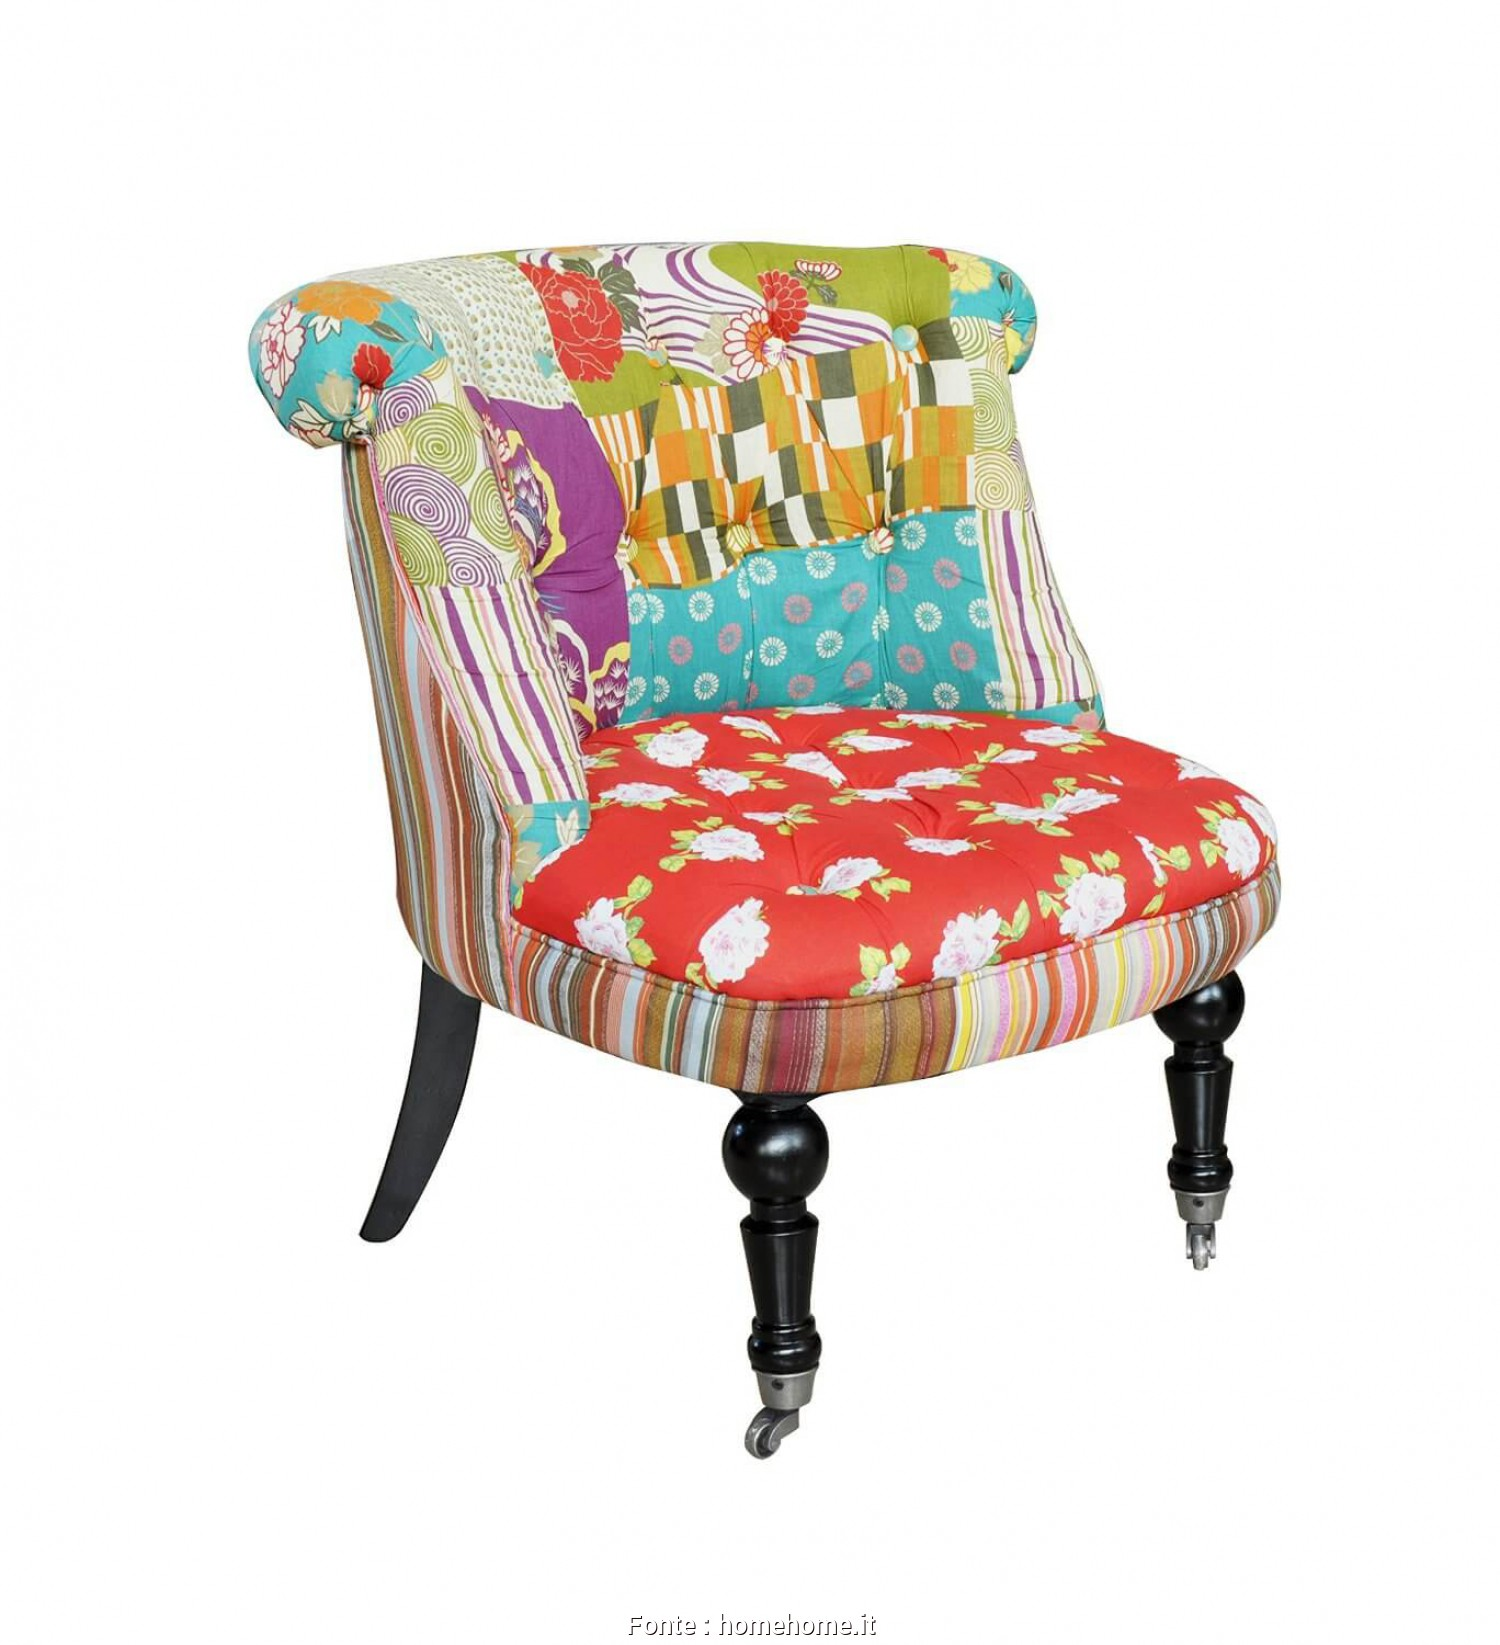 Poltrone Vintage Patchwork, Esclusivo Poltroncine In Stile Vintage, HomeHome